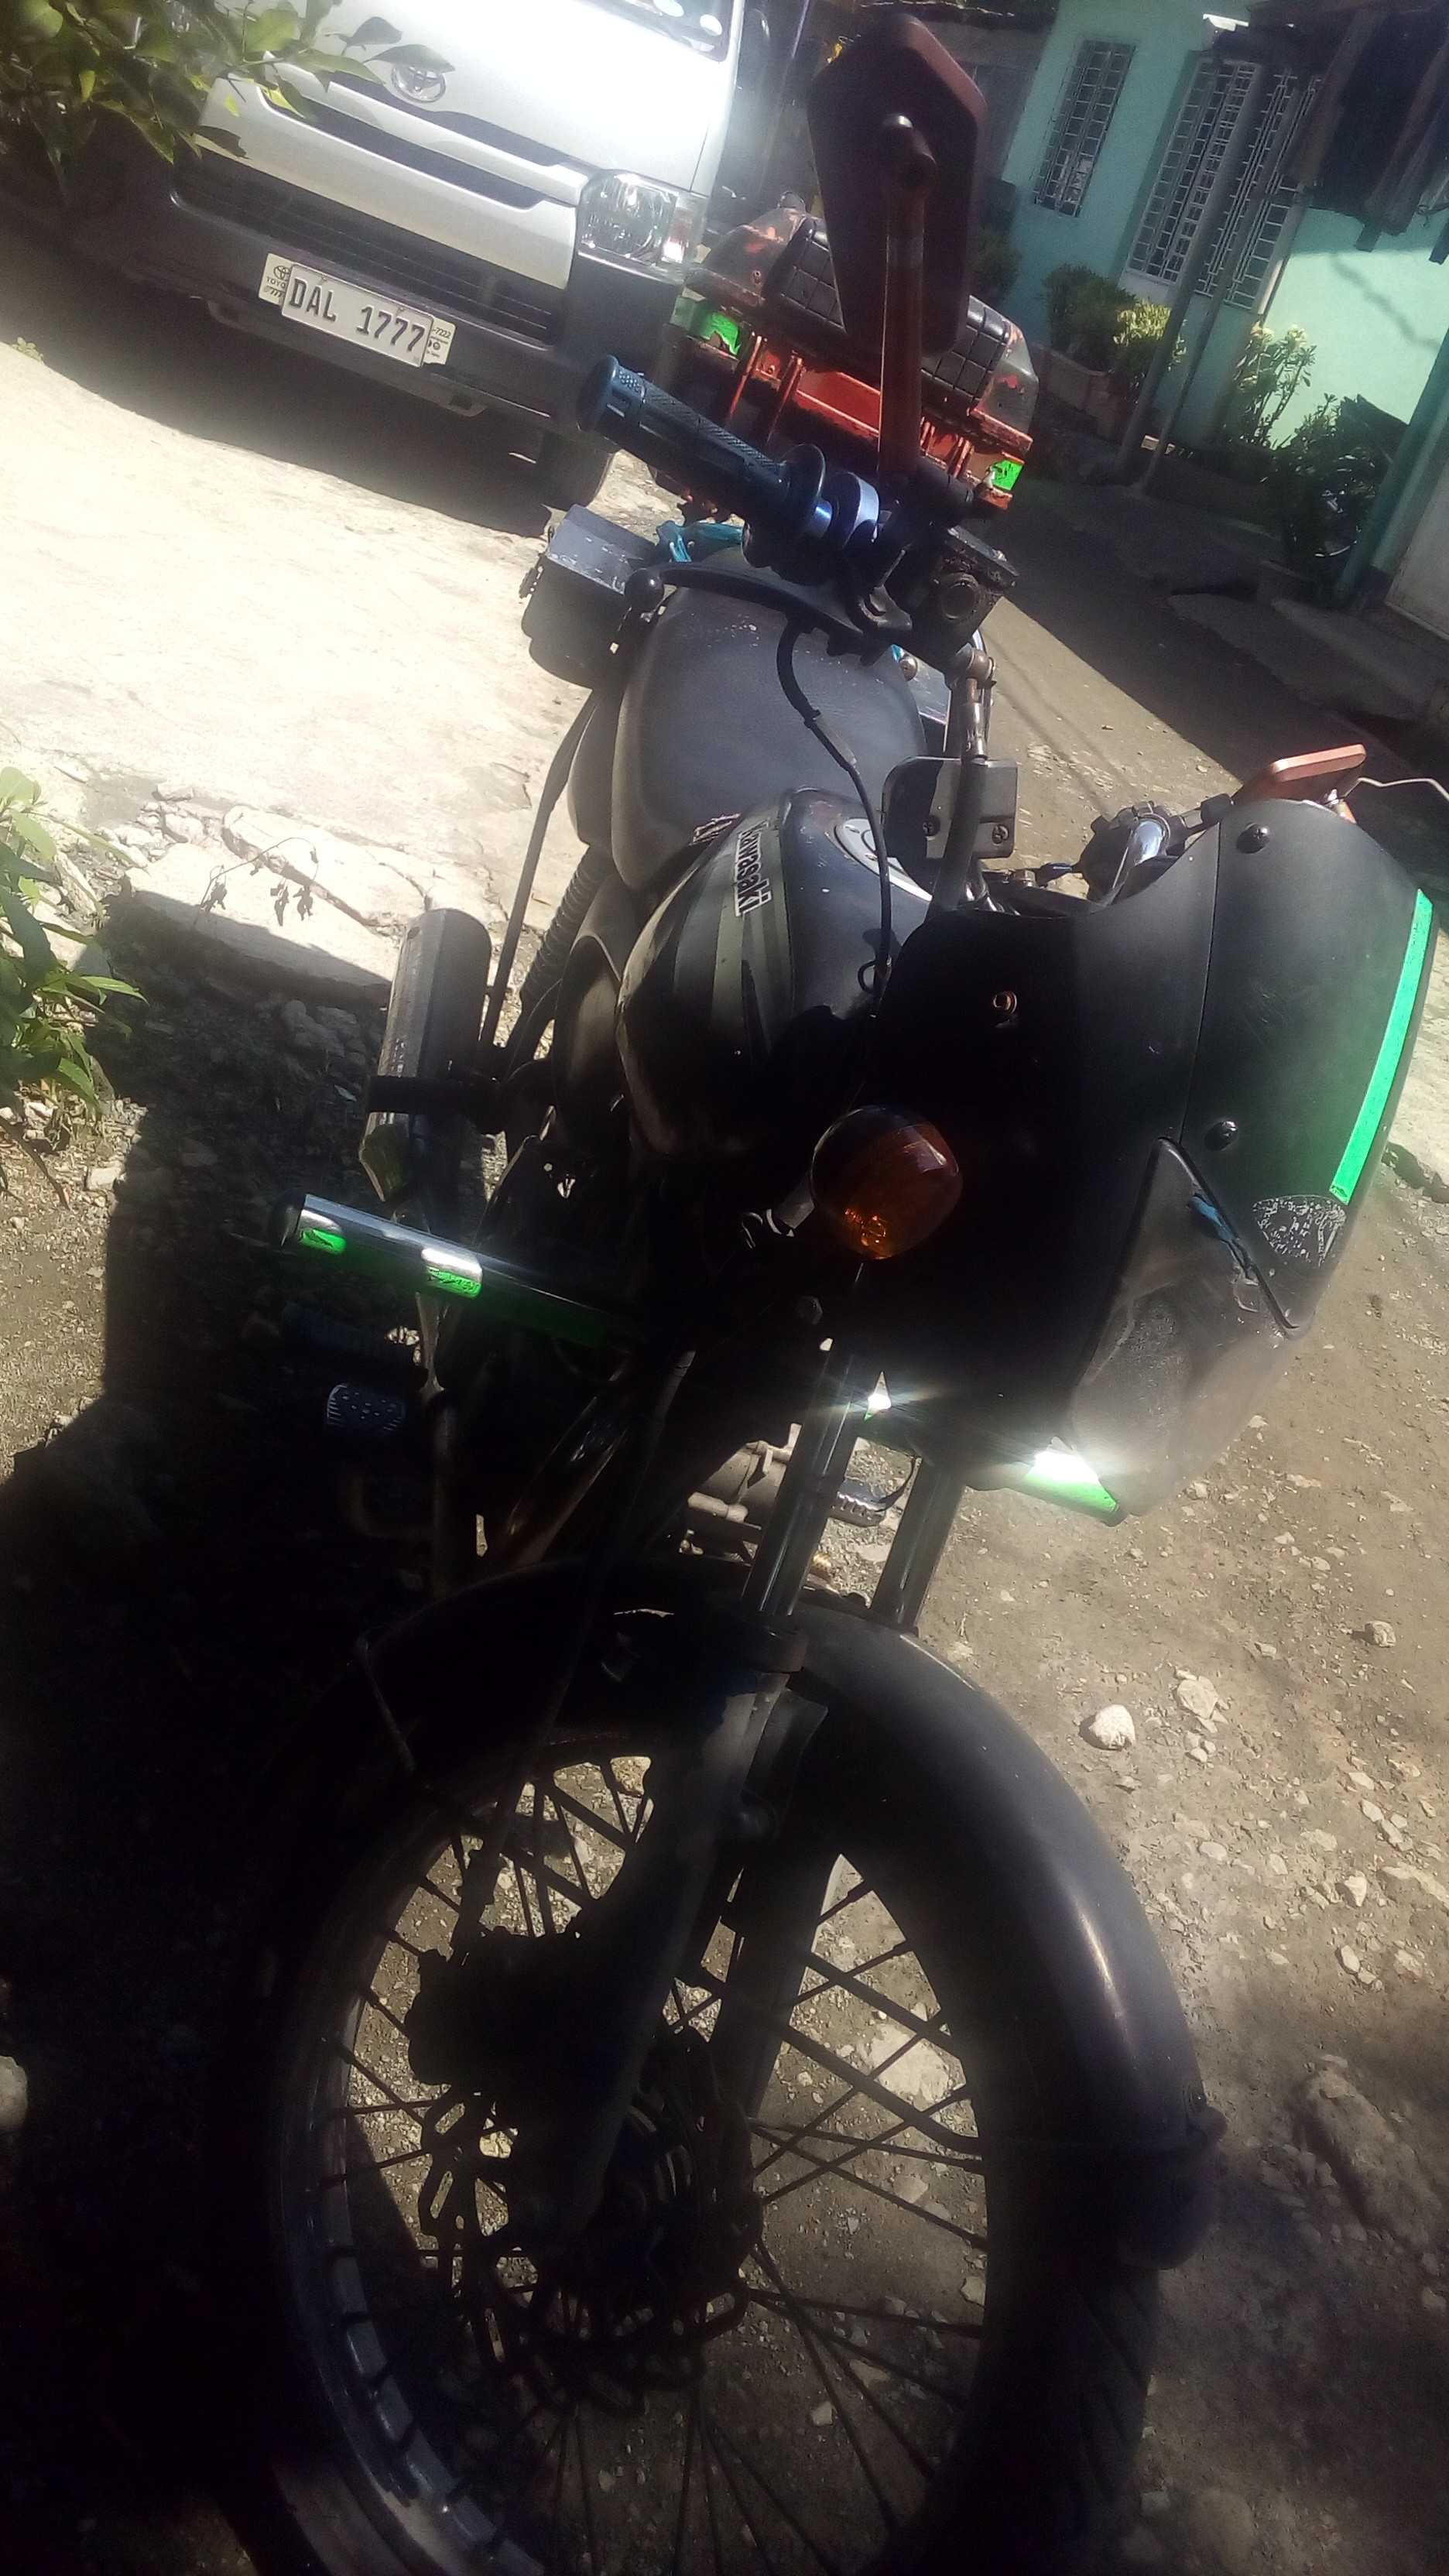 kawasaki wind 125 baja 2009 model photo